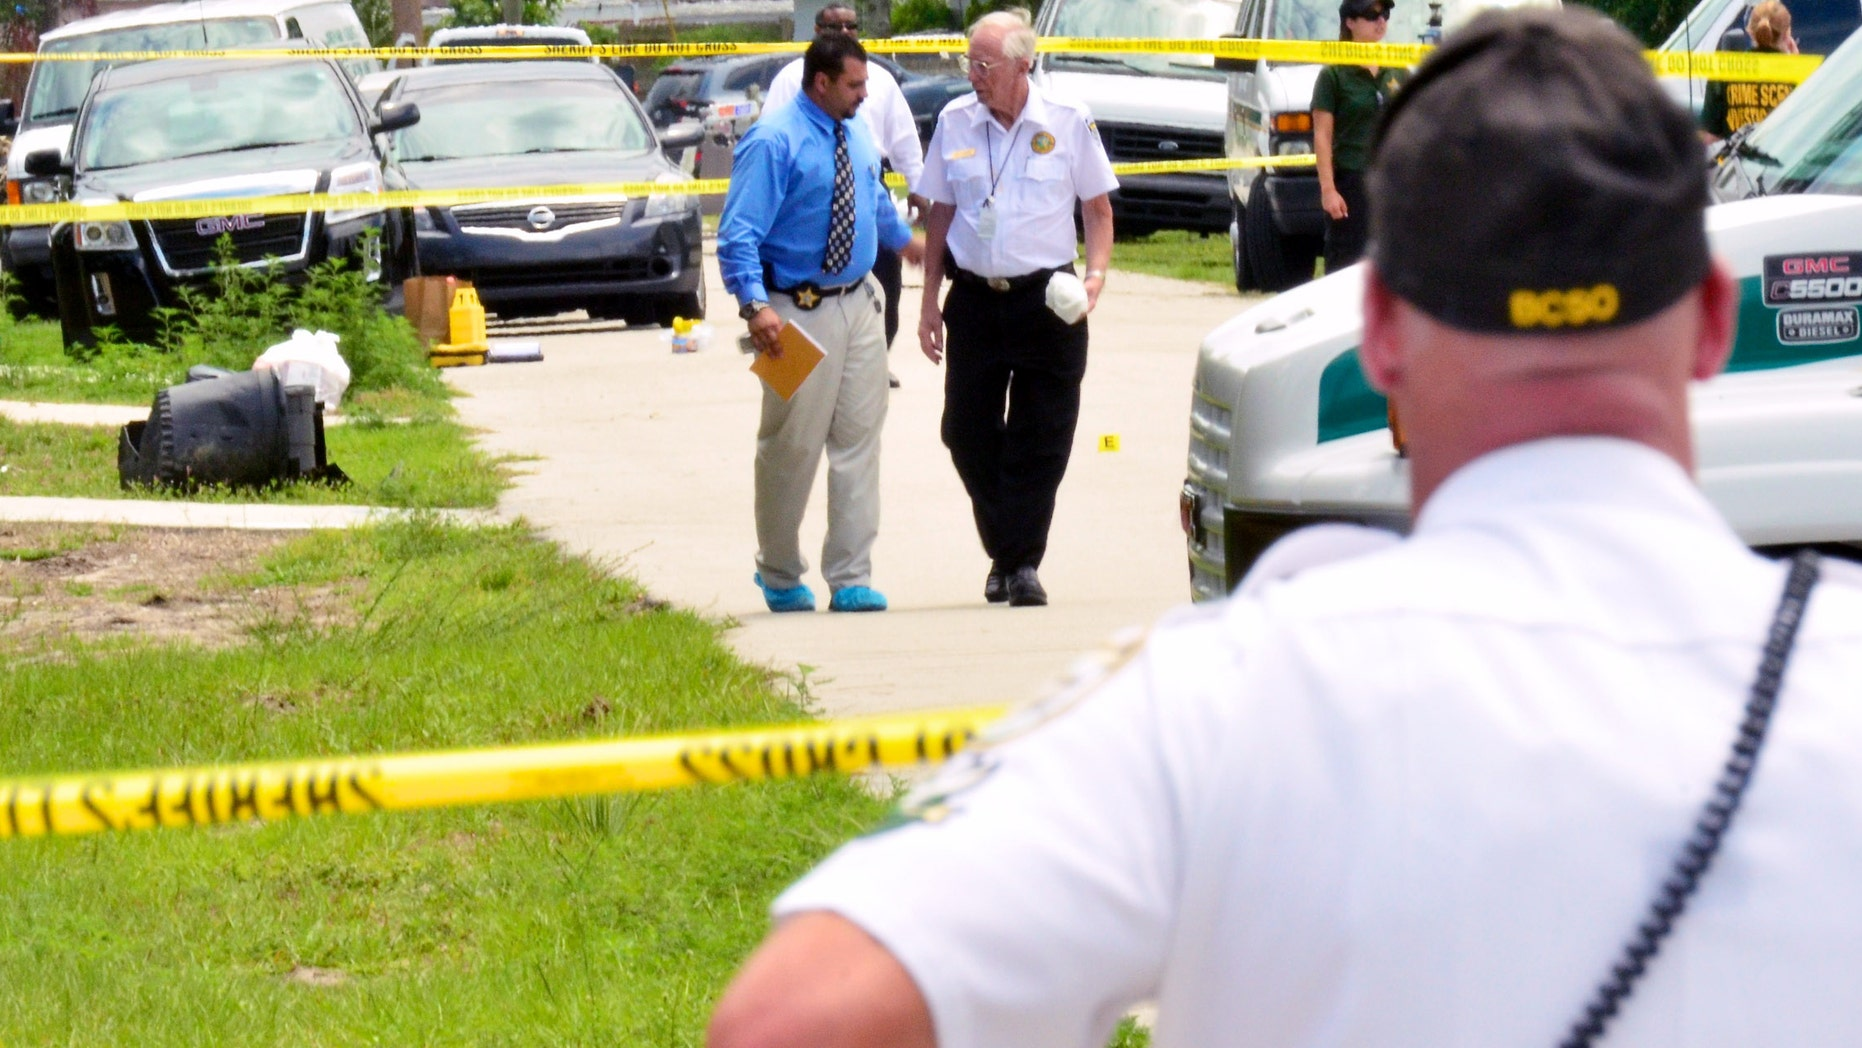 PORT ST JOHN, FL - MAY 15:  Brevard County crime scene workers conduct an investigation after Tonya Thomas shot her four children and then herself May 15, 2012 in Port St. John, Florida. The children ranged in ages 12 to 17 and the family had a history of domestic complaints.  (Photo by Roberto Gonzalez/Getty Images)